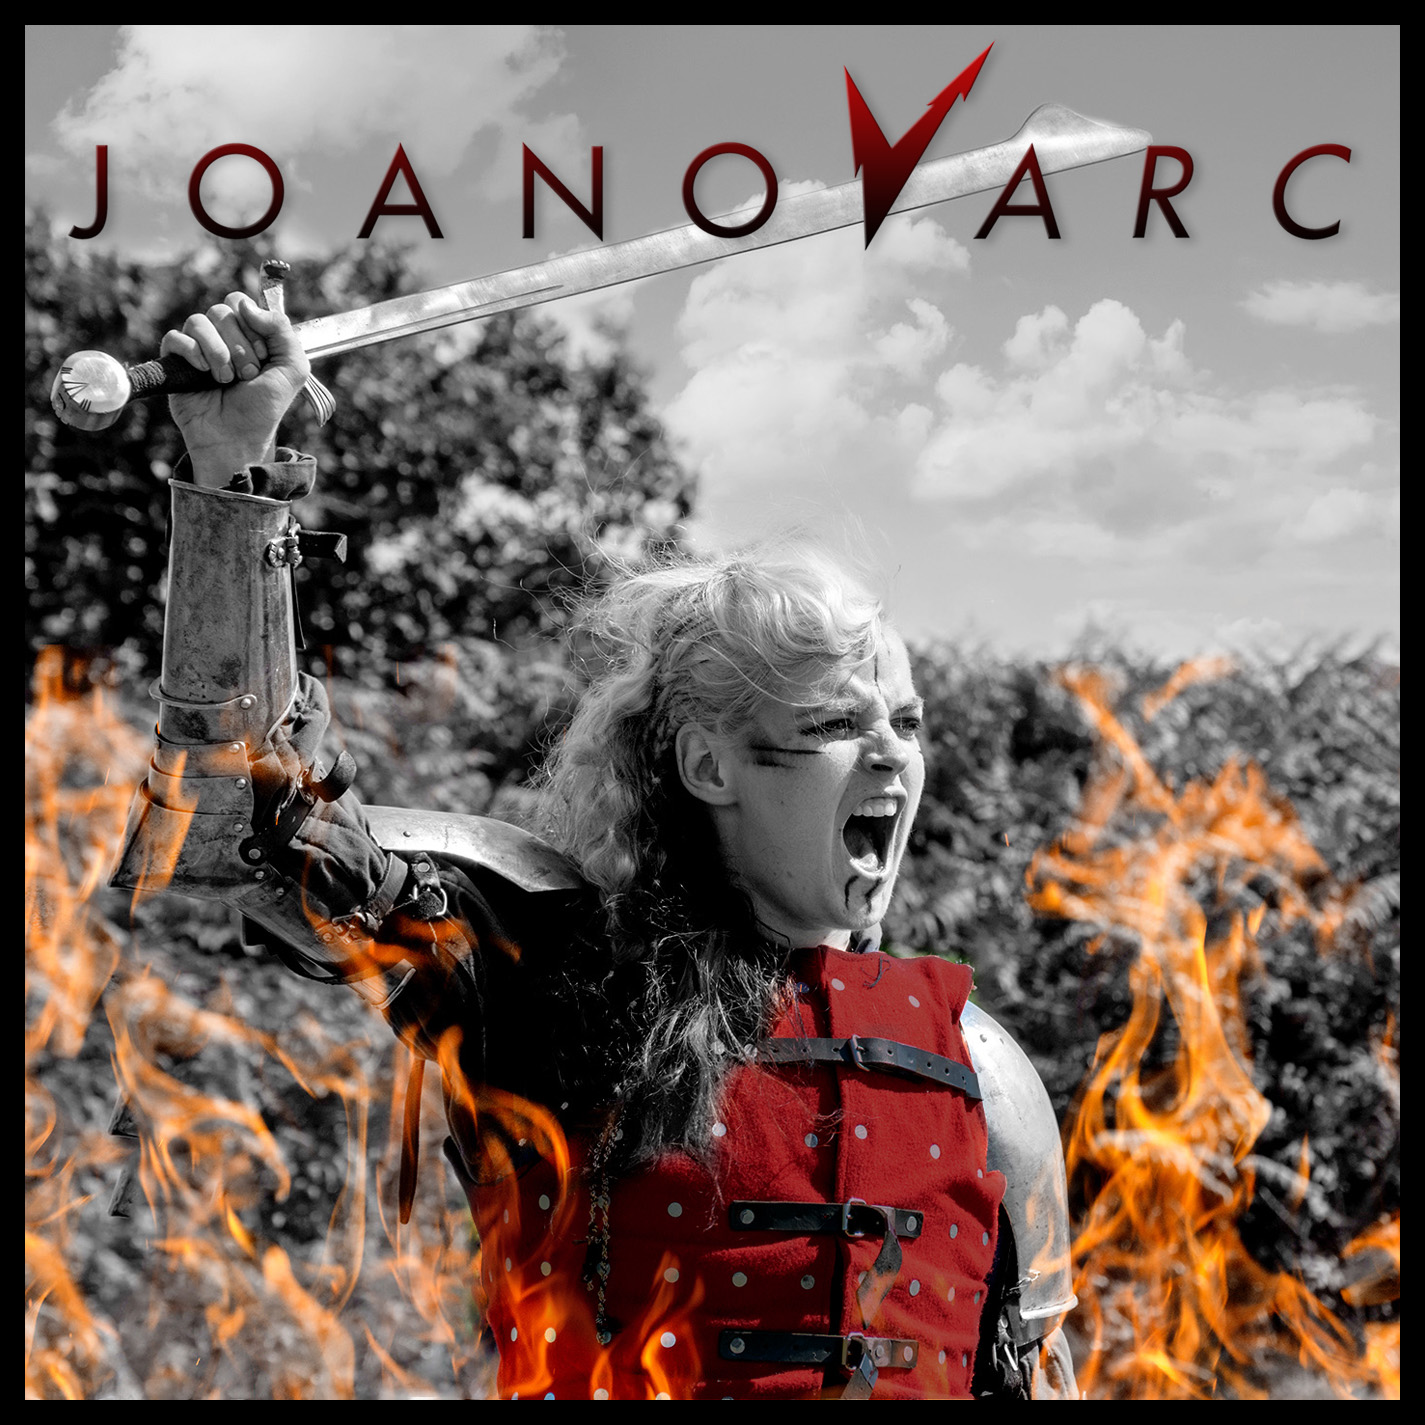 JOANovARC 2019 album release Holier Than Thou Records